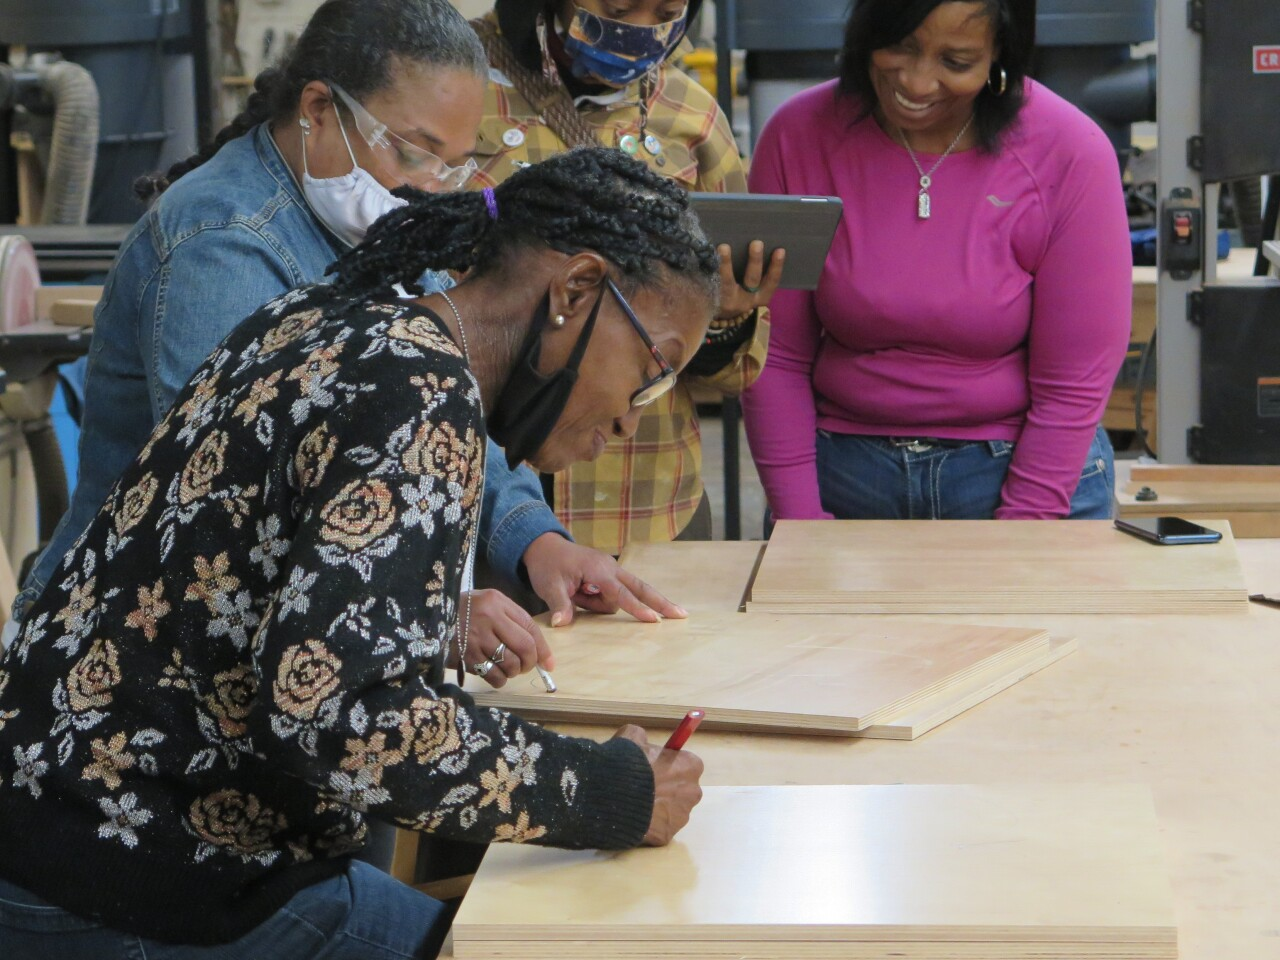 Johnnie Mae Gutter draws an angel design on a piece of wood during a class on Sept. 22, 2021.